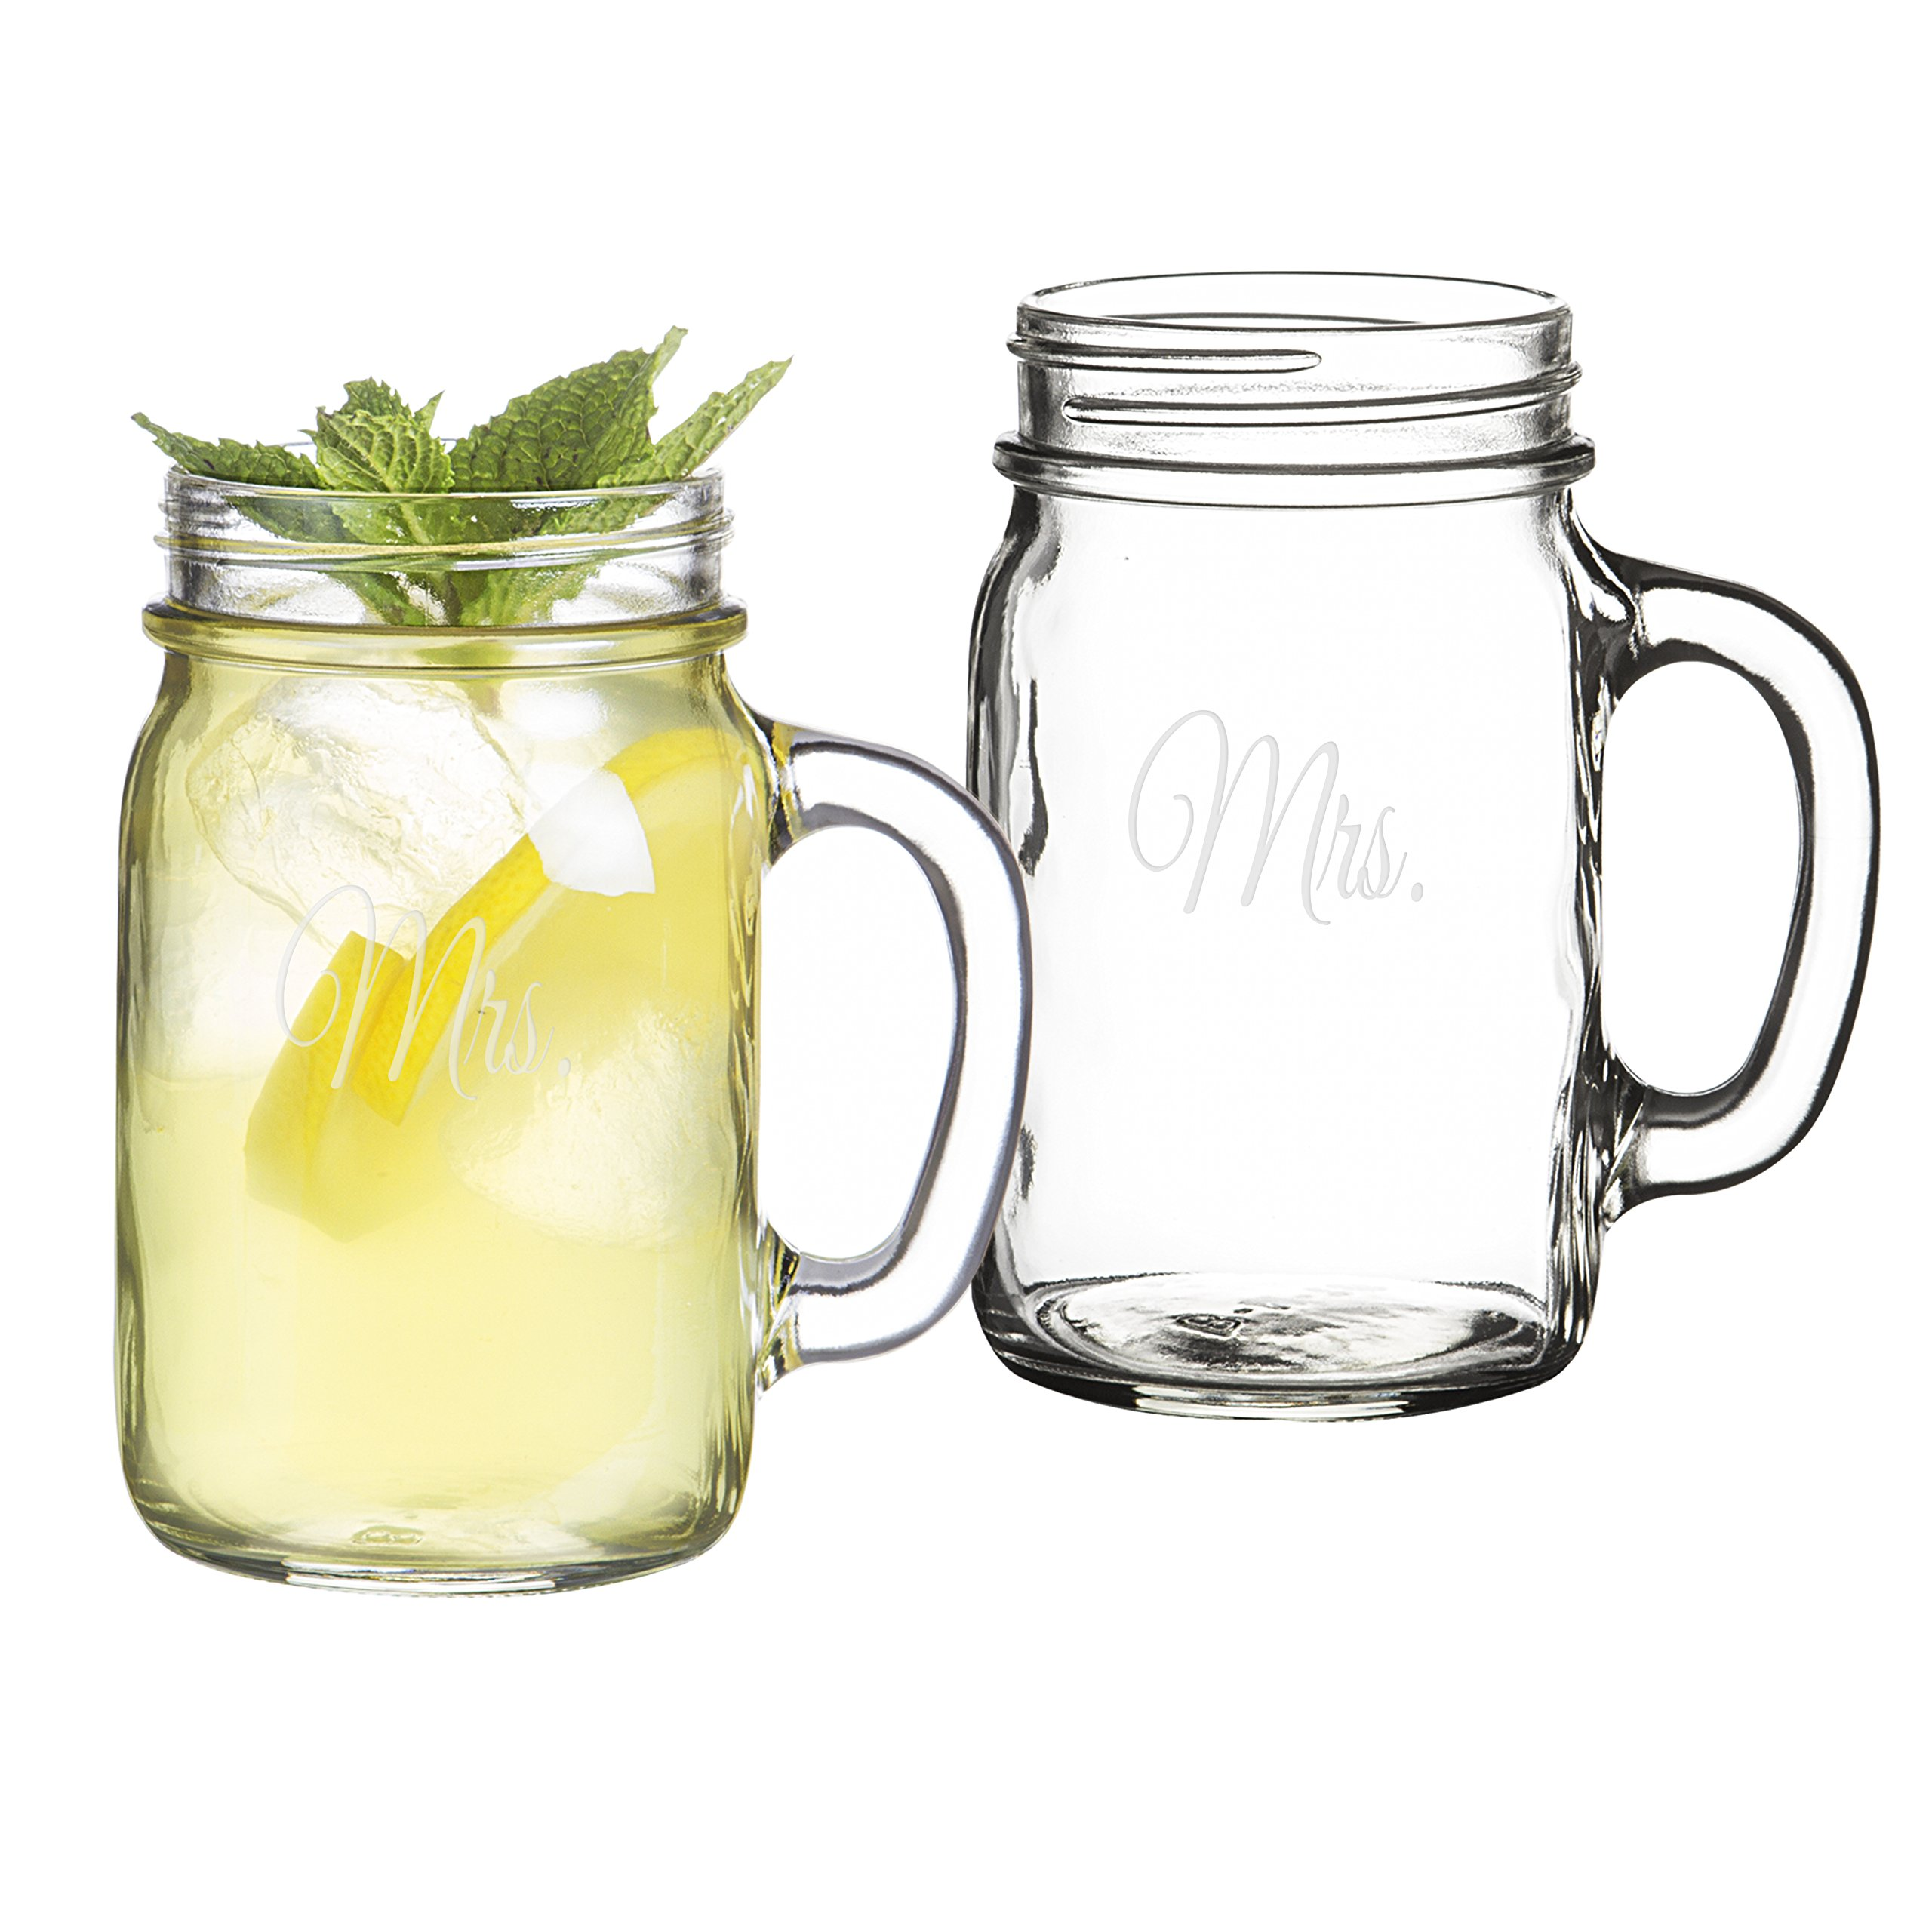 Cathy's Concepts Mrs. & Mrs. Old Fashioned Drinking Jar Set by Cathy's Concepts (Image #5)